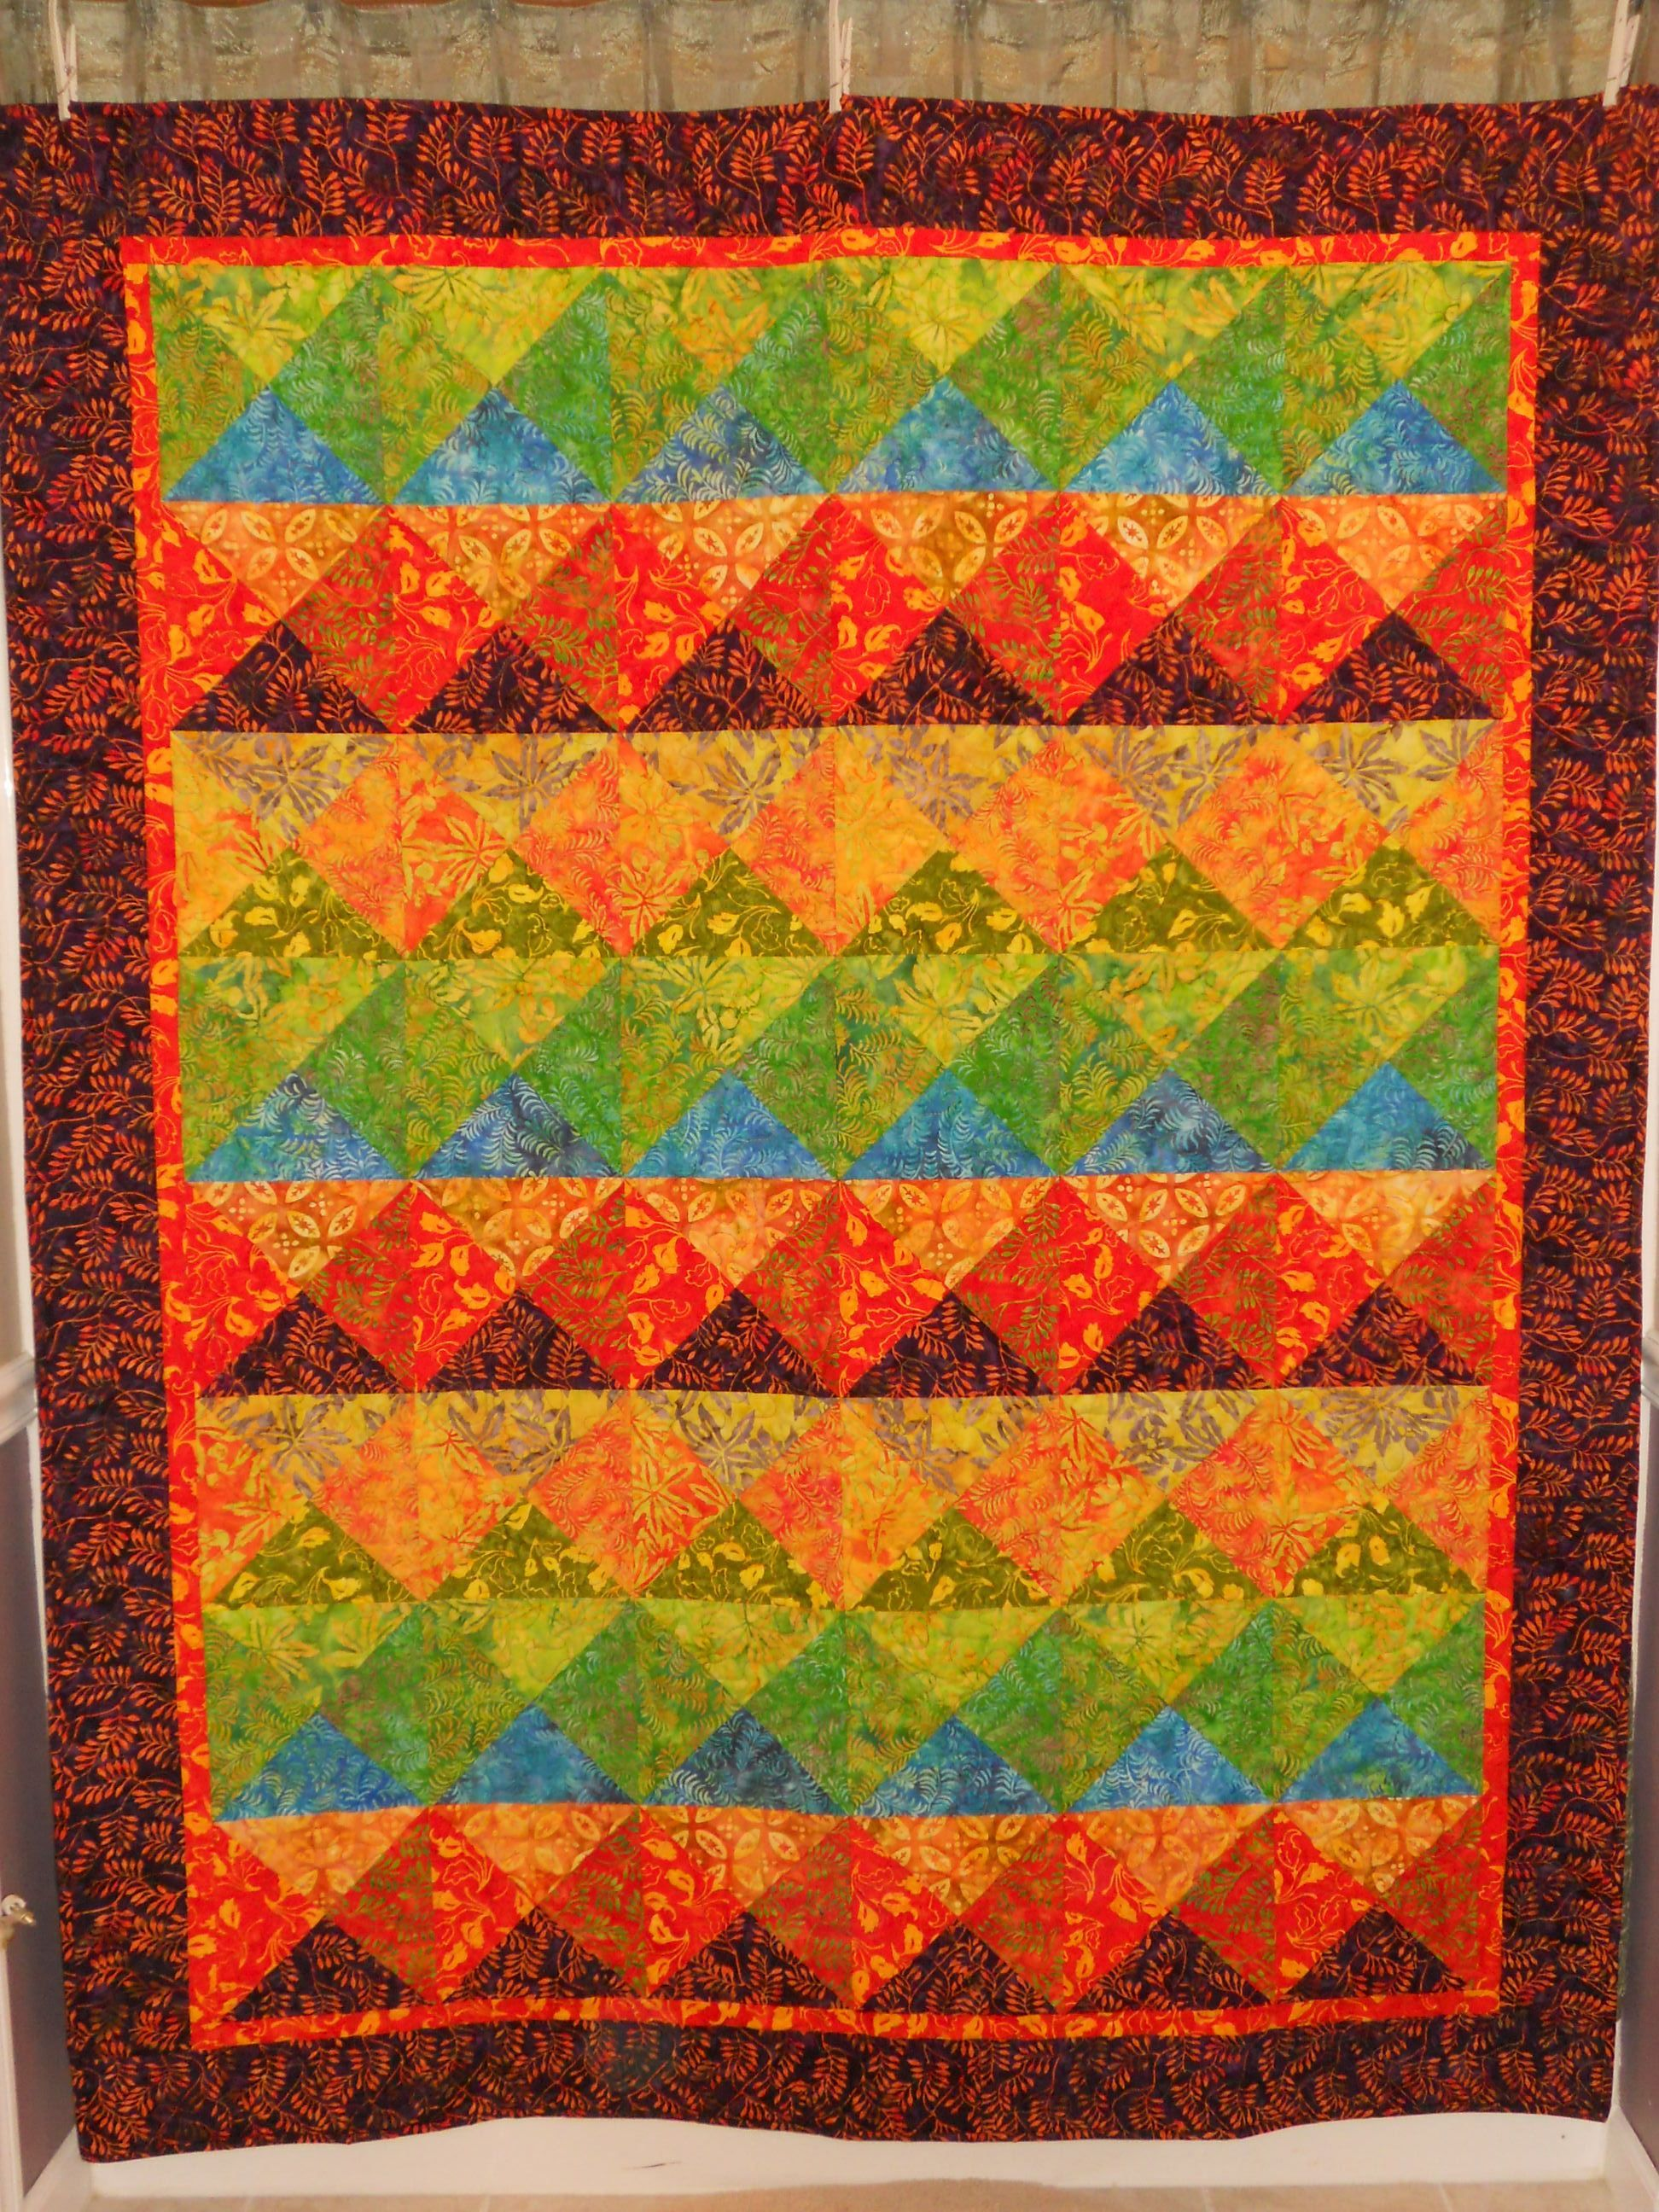 Fons and Porters Quilt Kit I made for my husband before we were ... : fons and porter quilt kits - Adamdwight.com